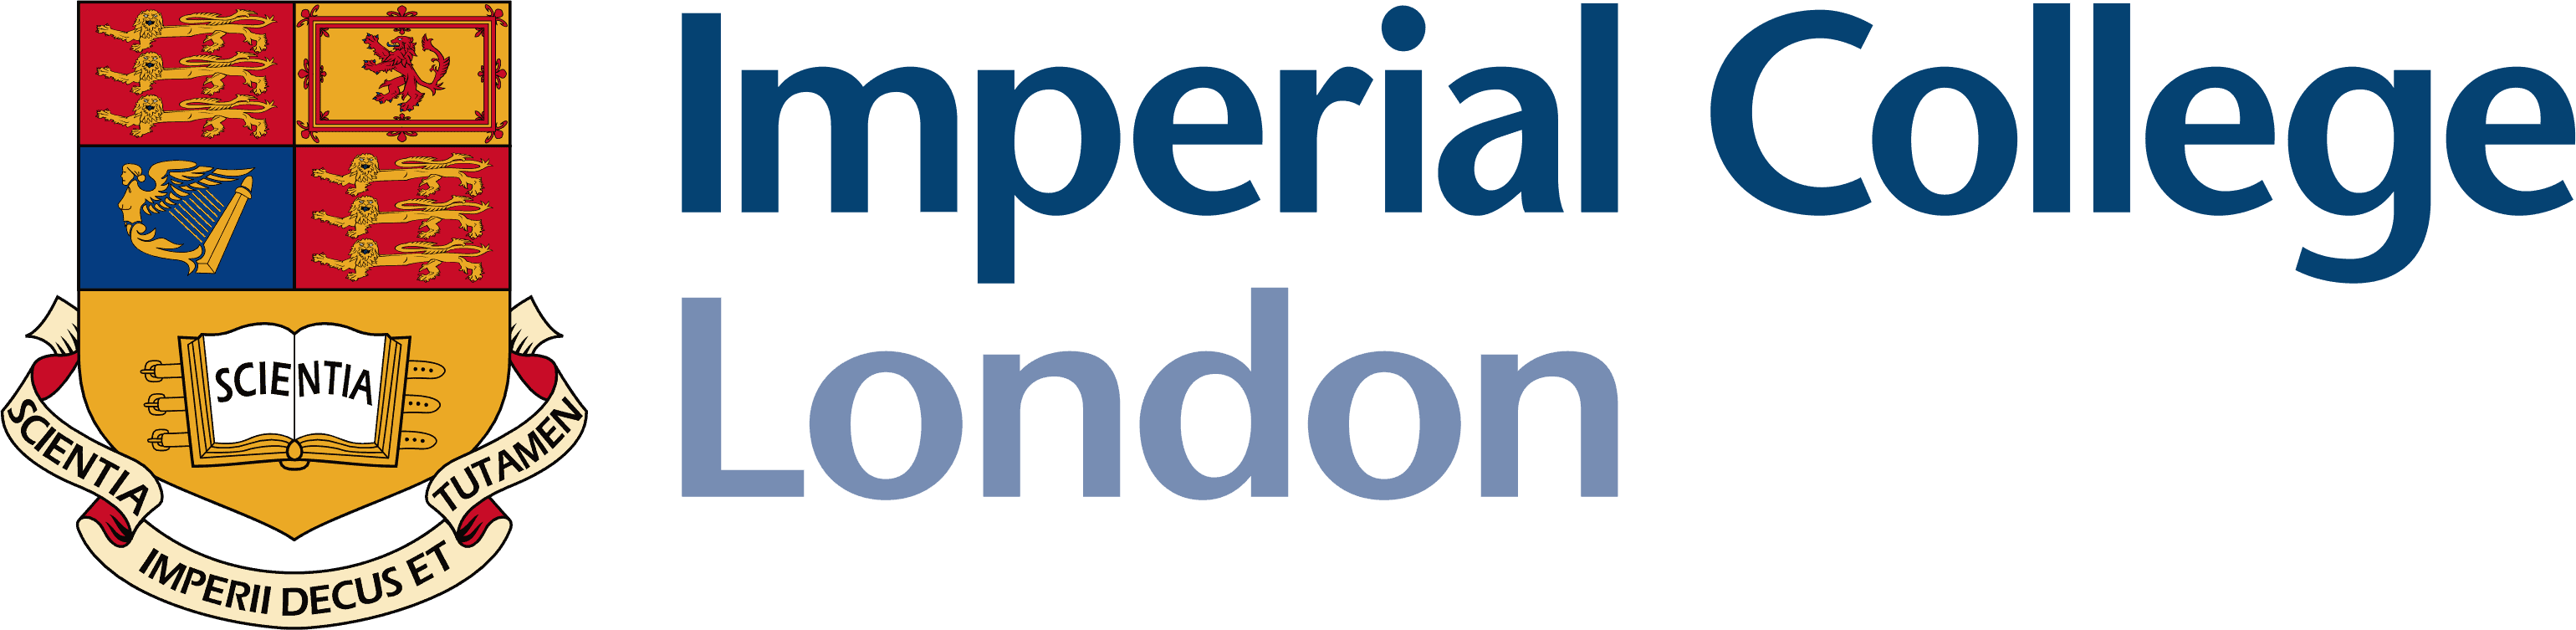 Imperial College London logo